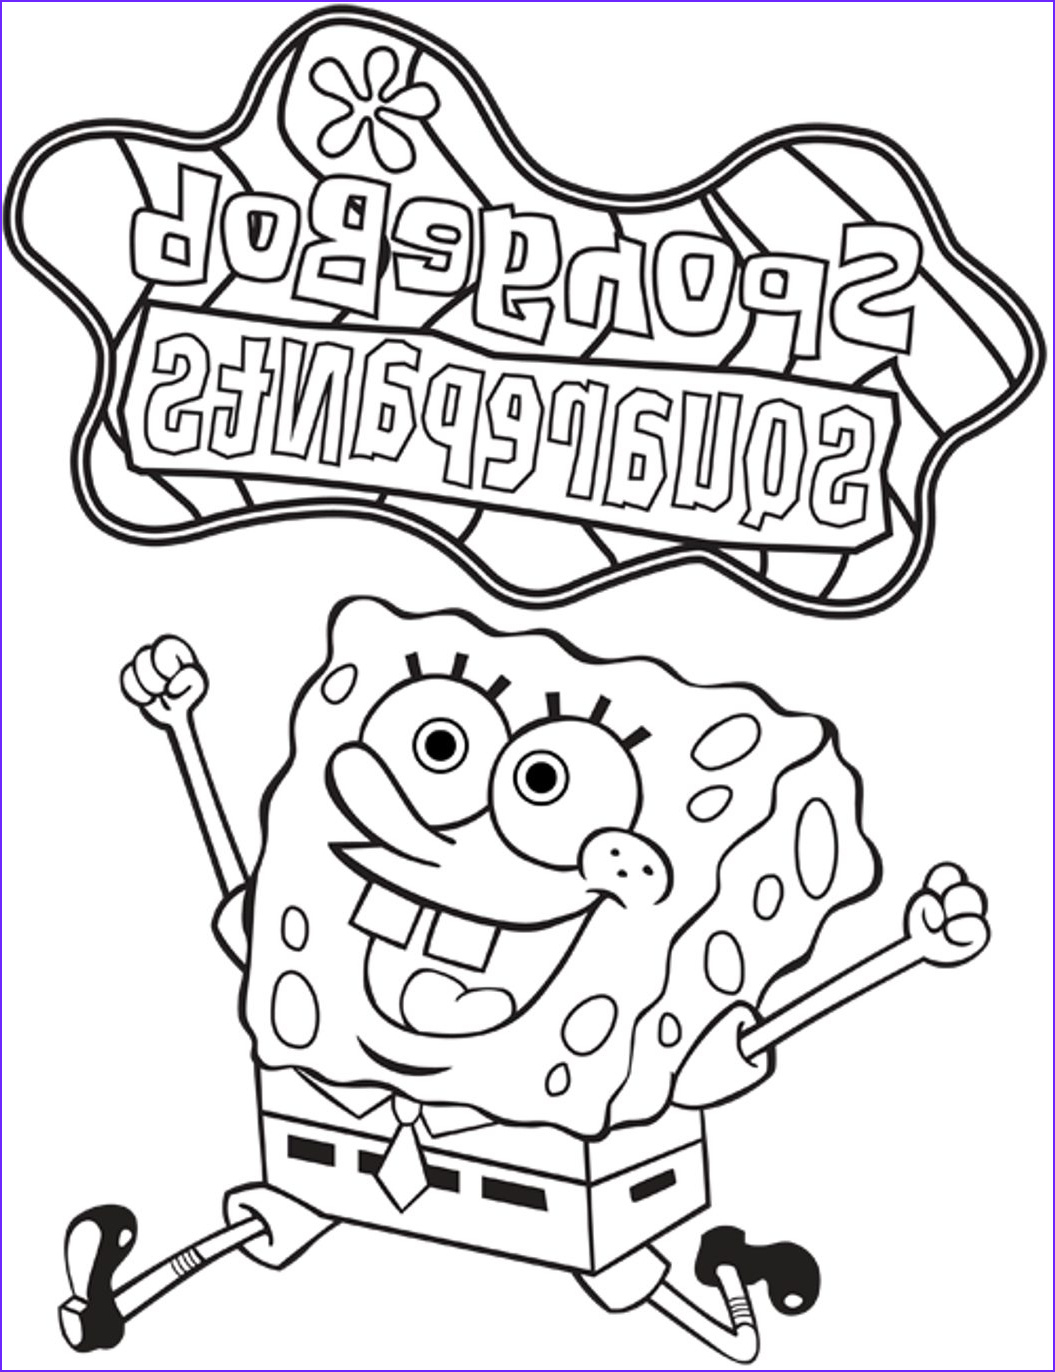 Nickelodeon Coloring Books Inspirational Photos Free Nickelodeon Spongebob Coloring Pages for Kids